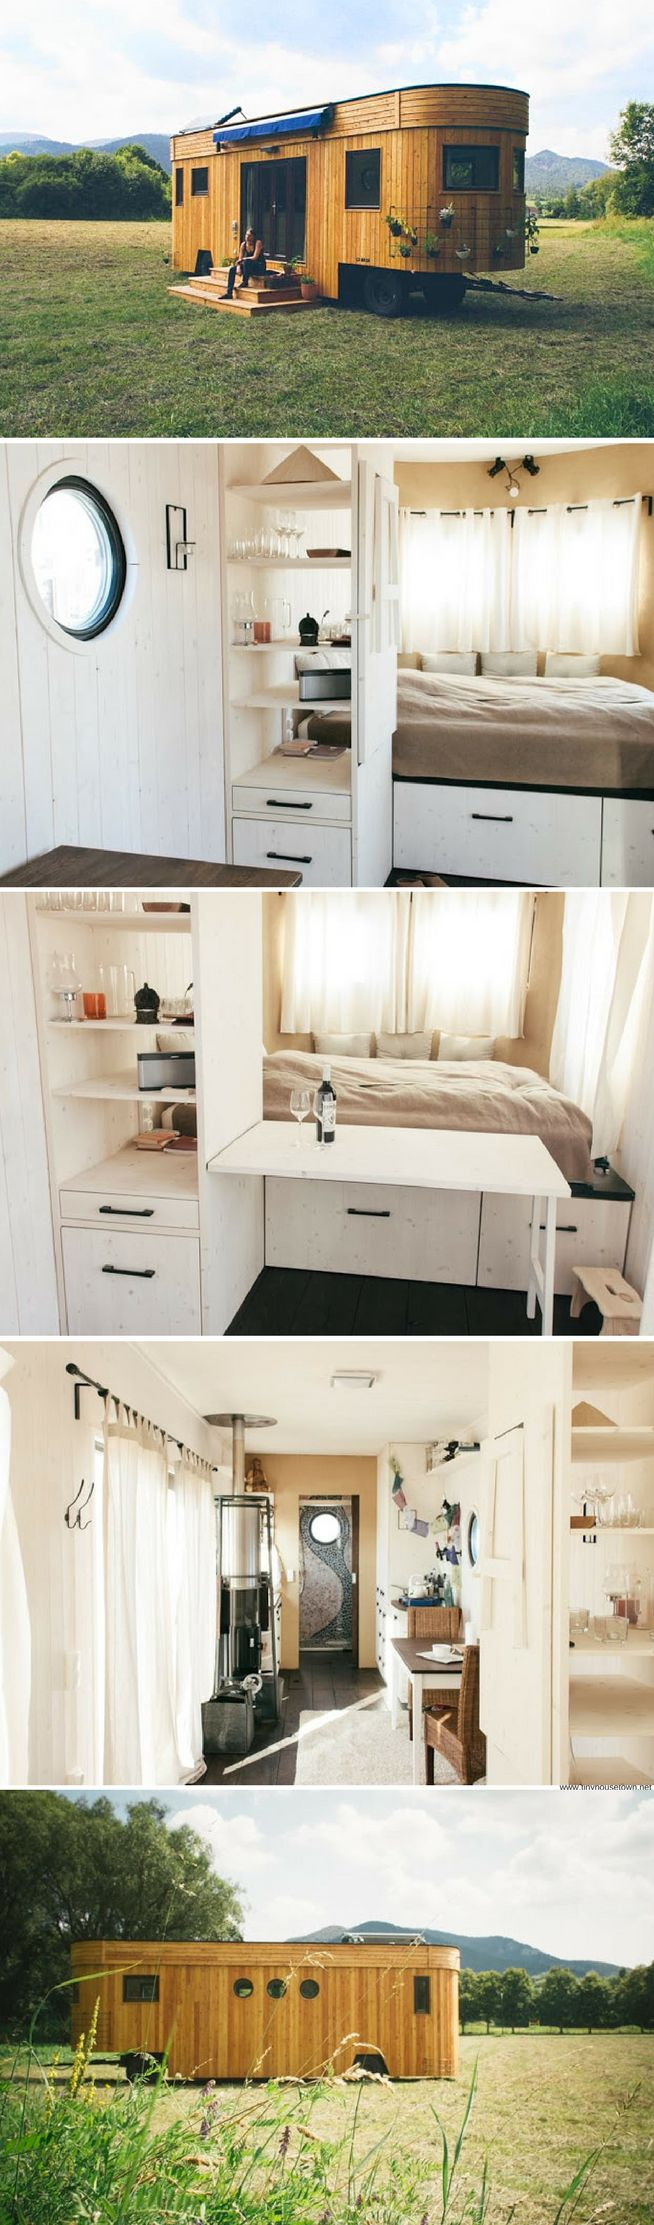 Peachy 17 Best Ideas About Tiny House Design On Pinterest Tiny Homes Largest Home Design Picture Inspirations Pitcheantrous